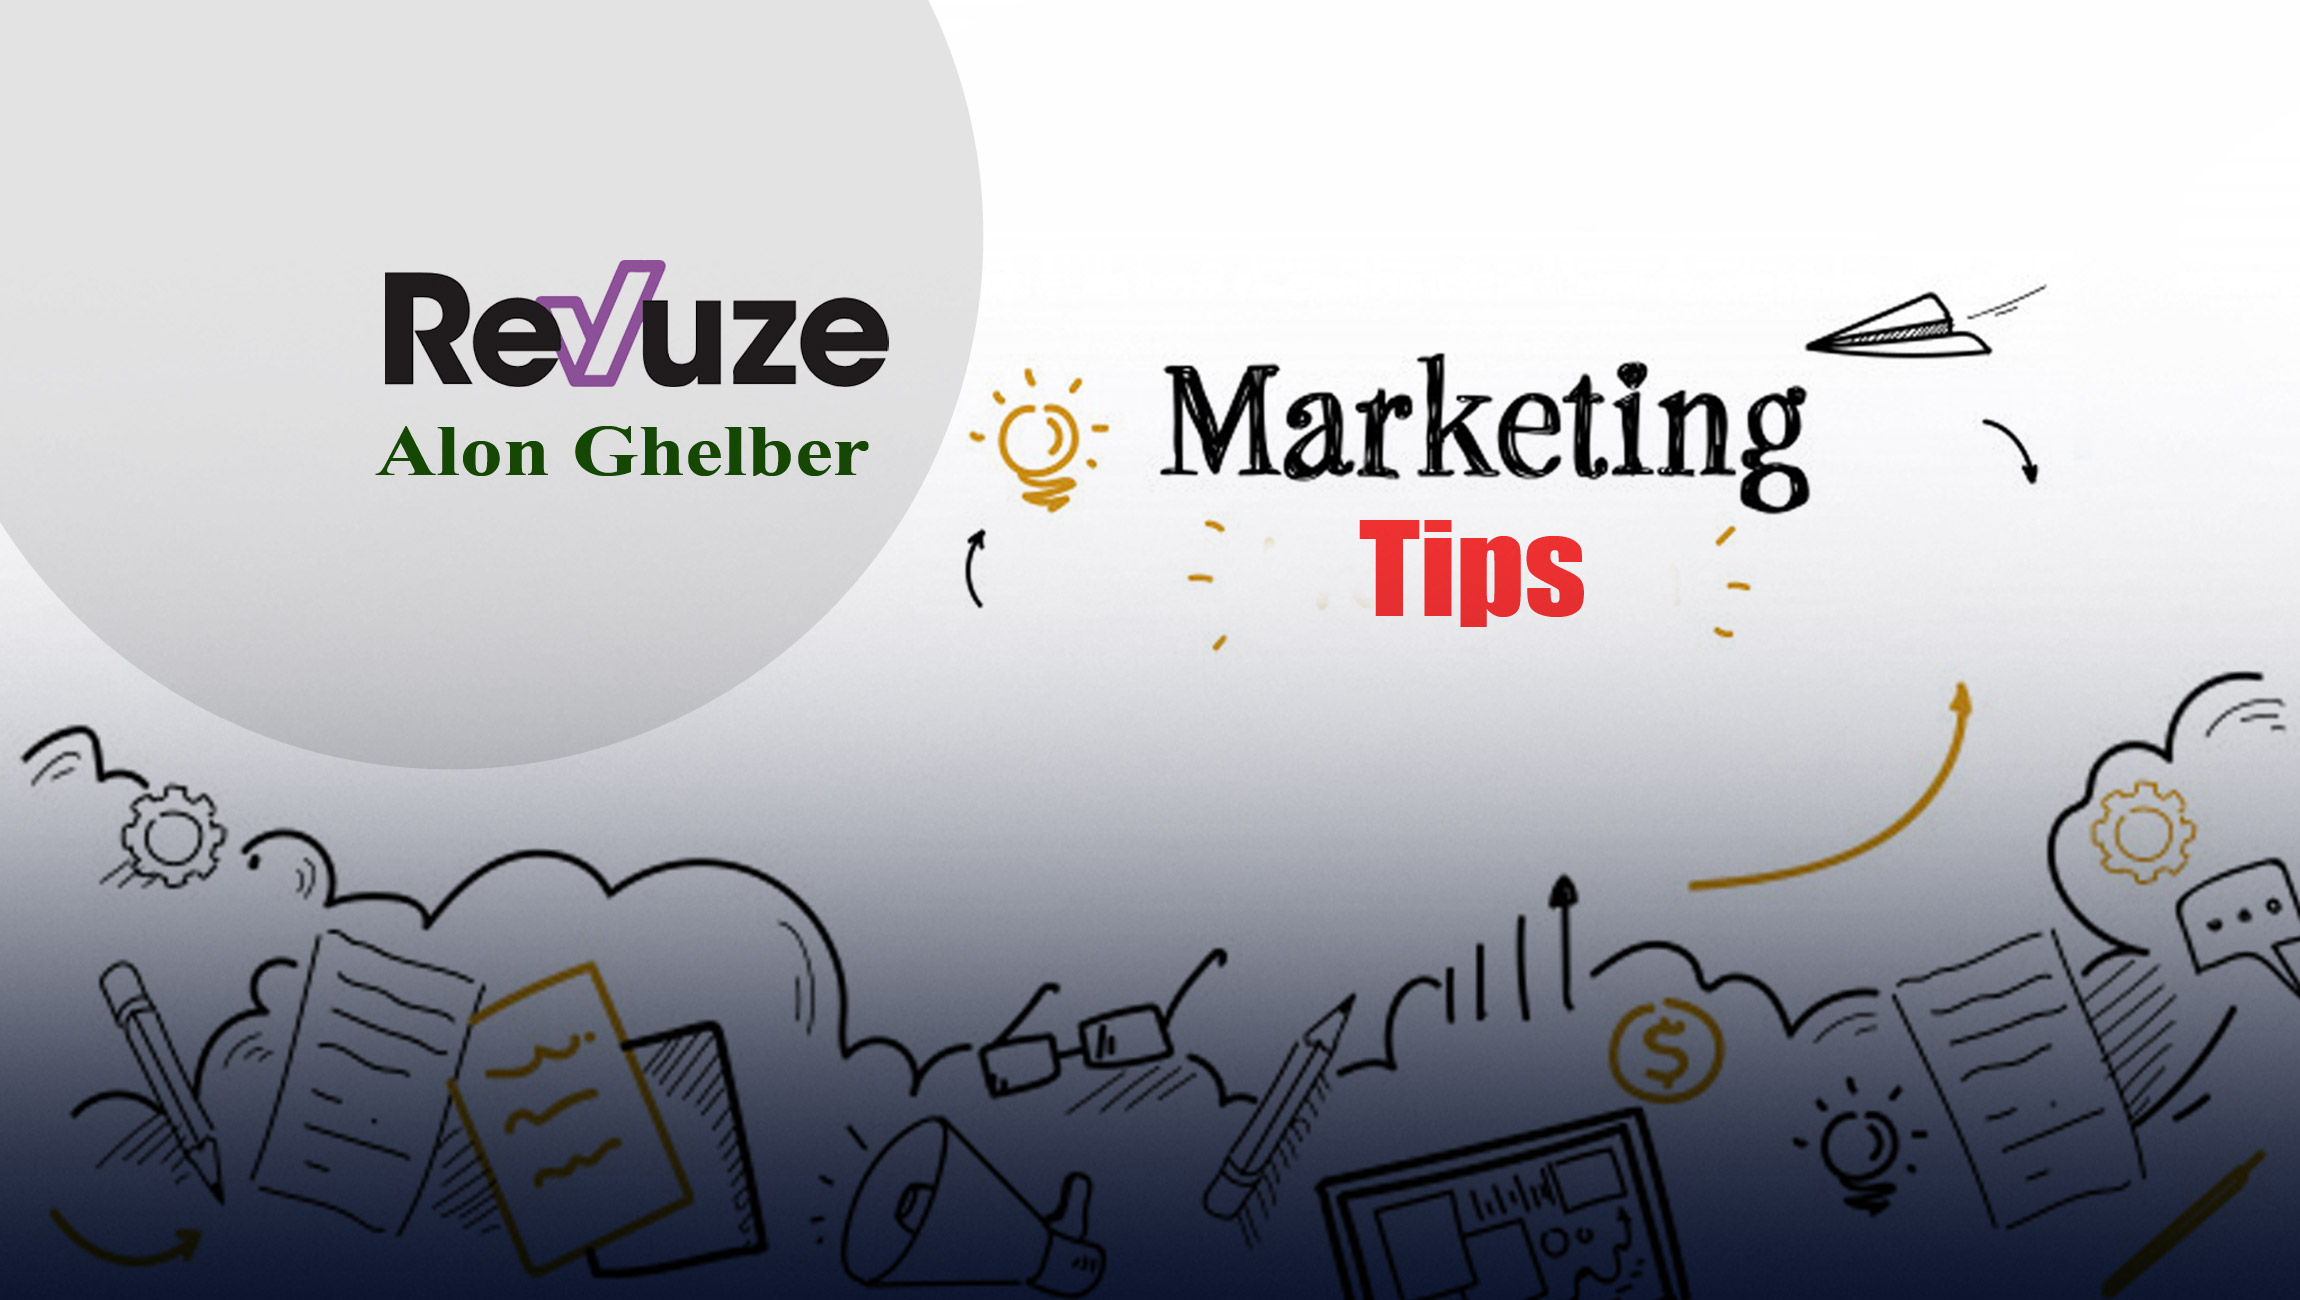 8 Marketing Executives Share Their Tips For Feature Marketing